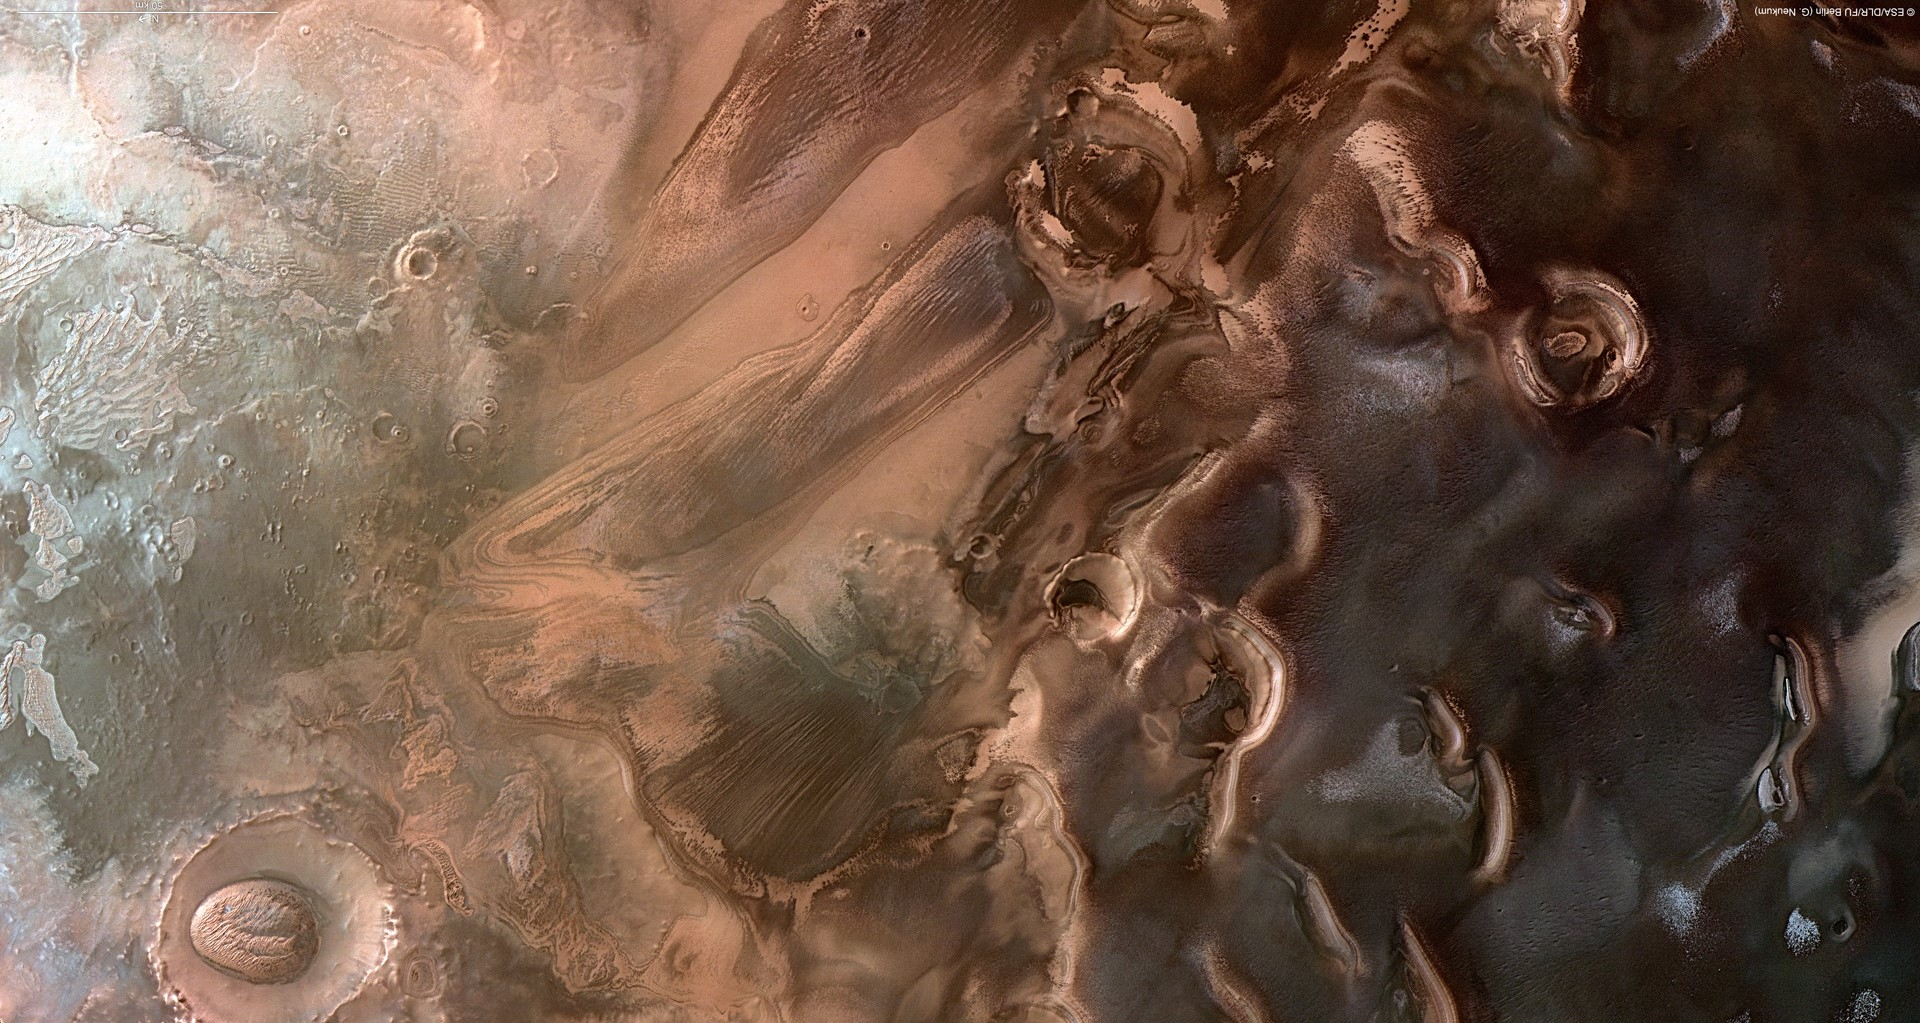 Springtime_at_Mars'_south_pole_ESA205673